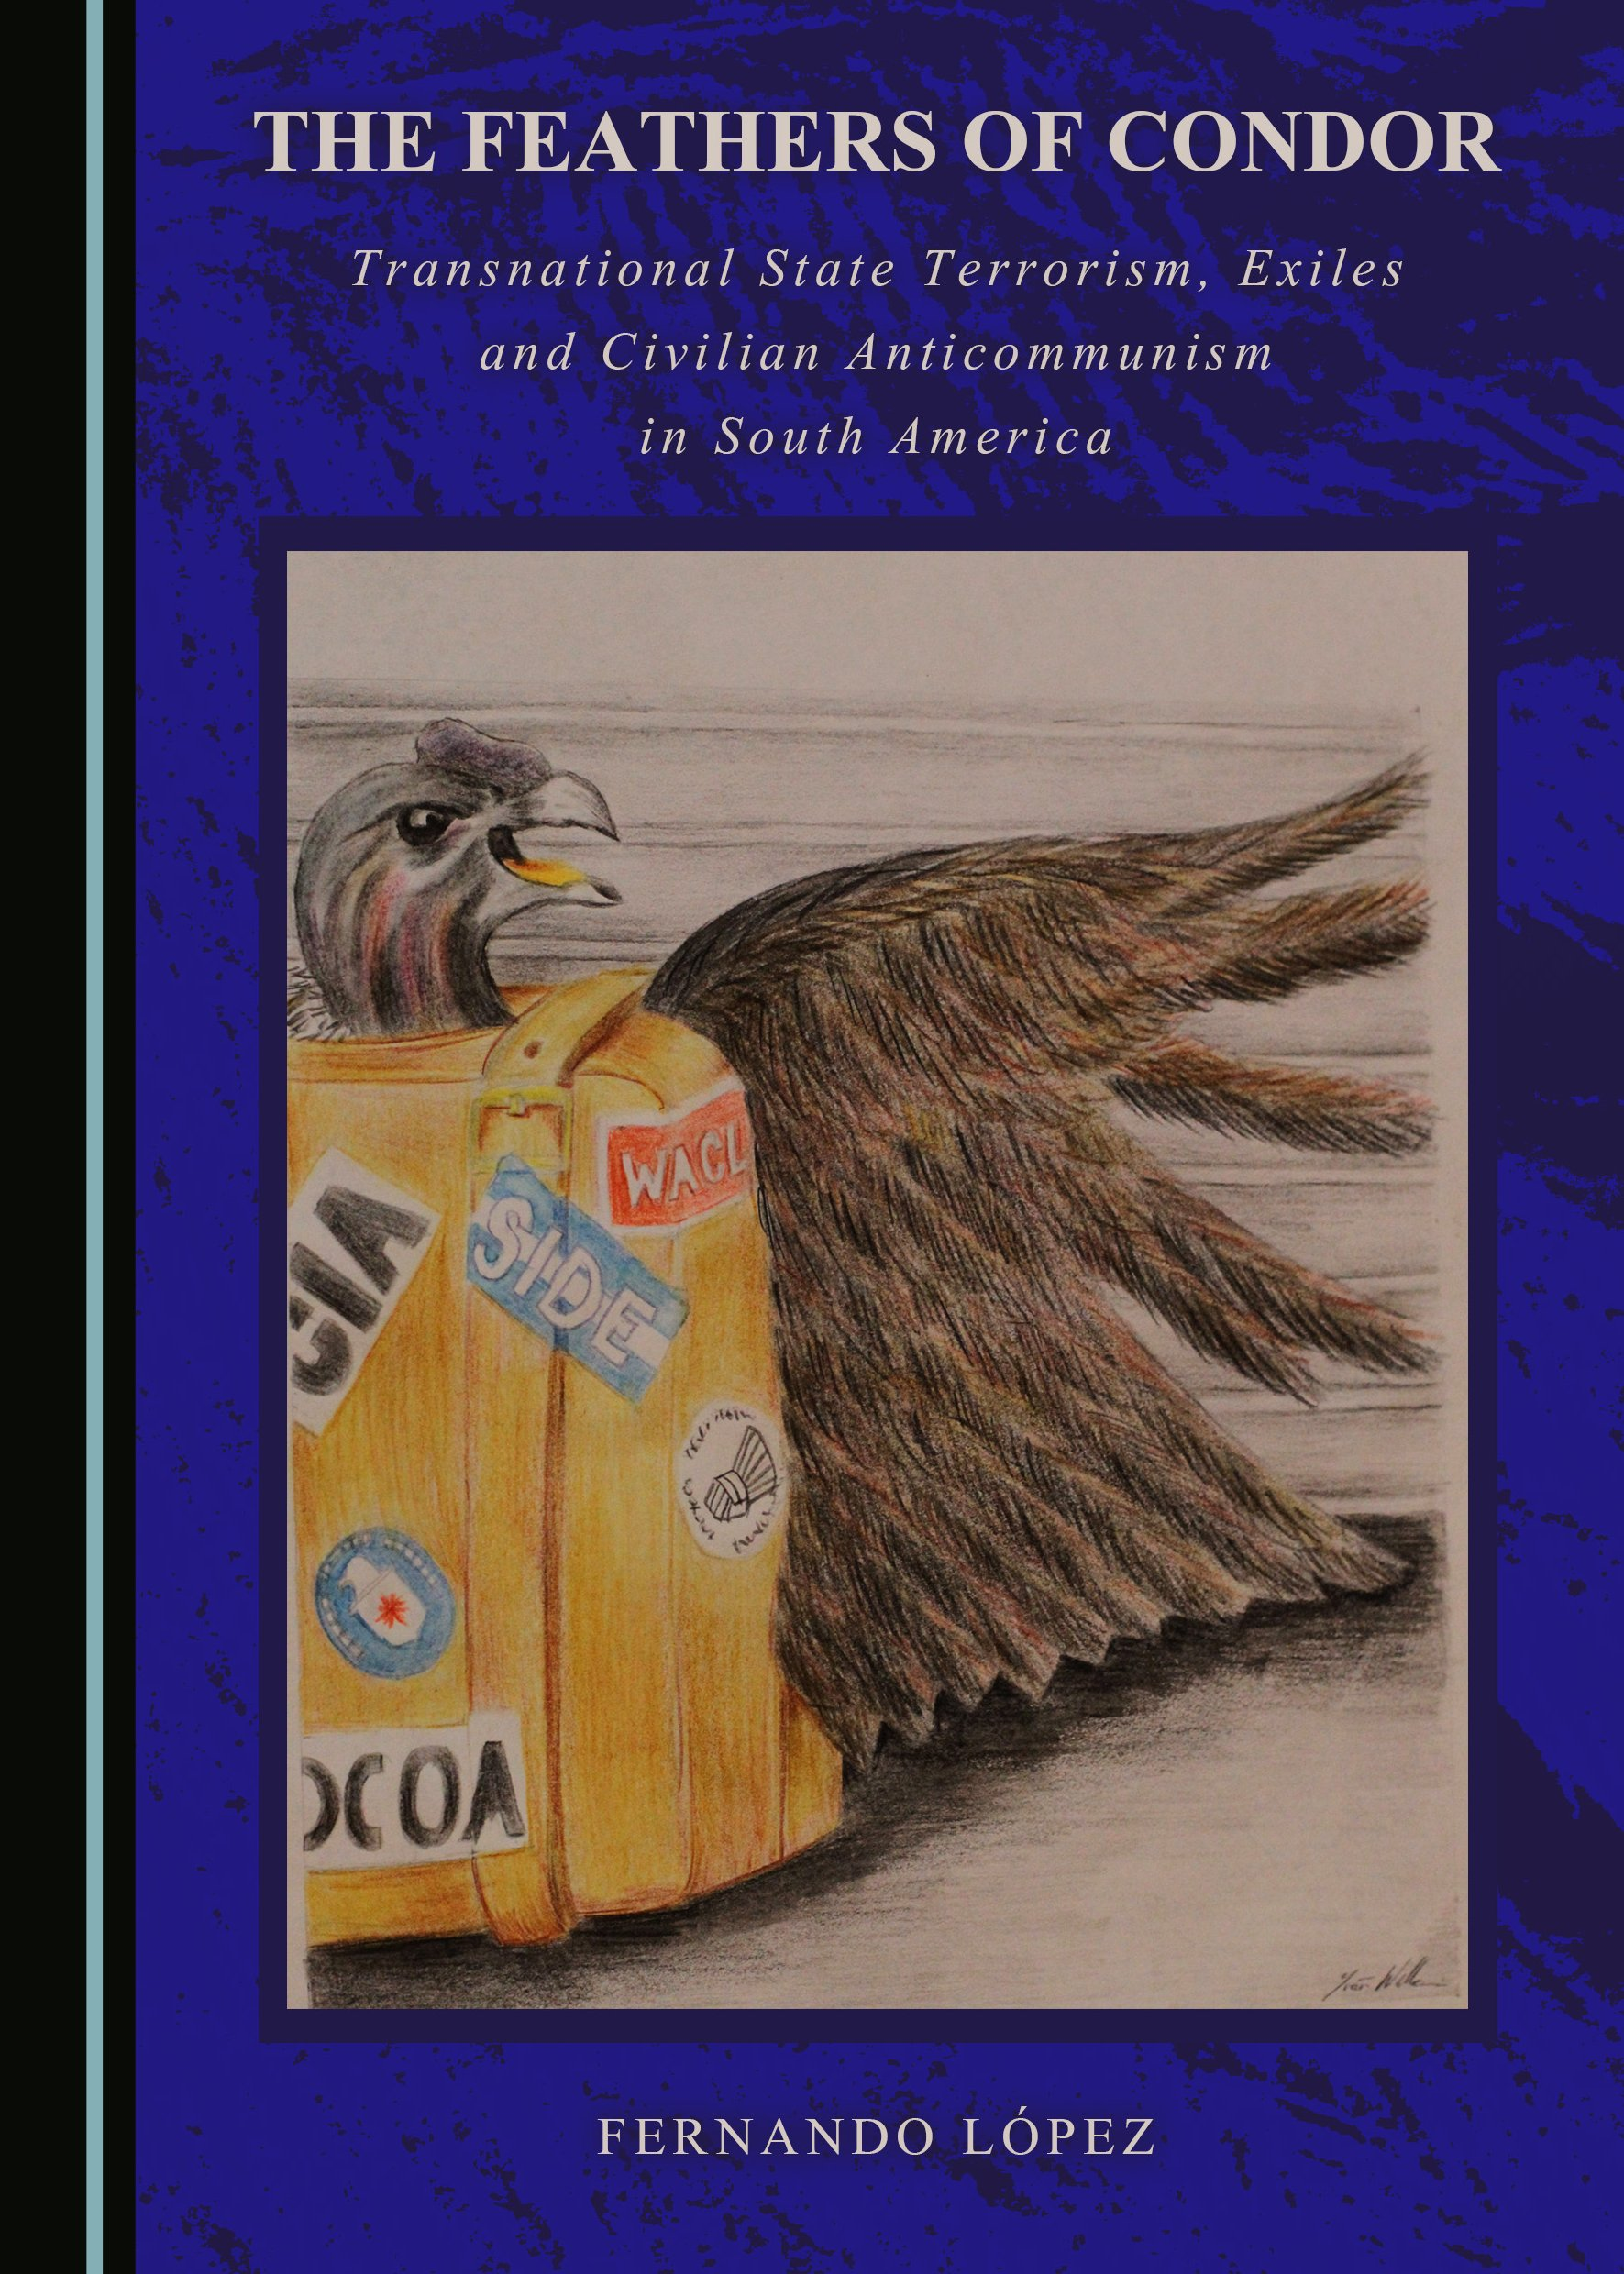 The Feathers of Condor: Transnational State Terrorism, Exiles and Civilian Anticommunism in South America